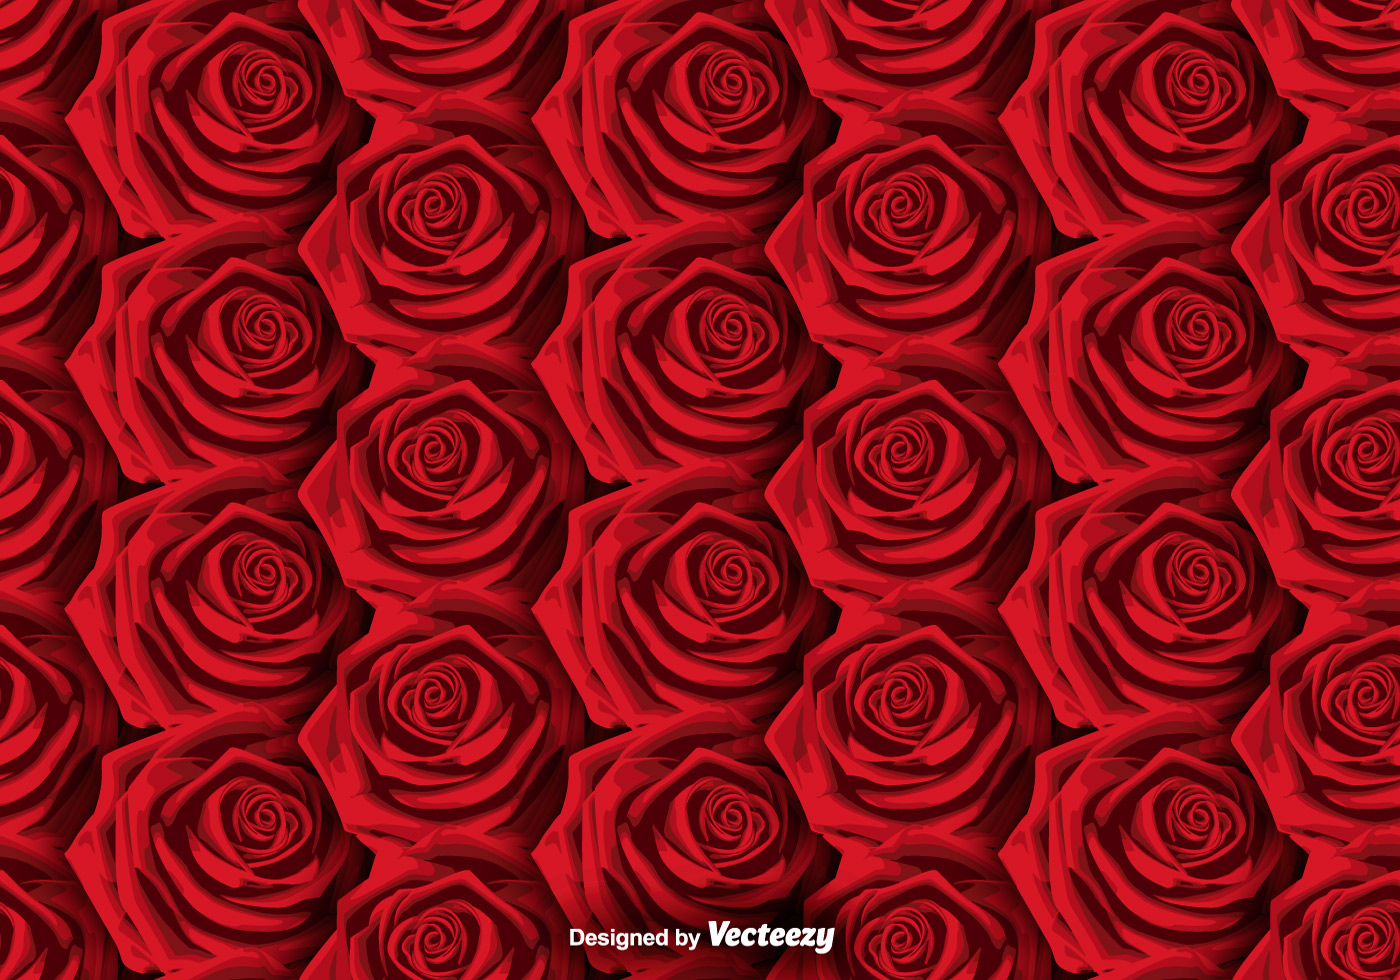 Vector Roses Background - SEAMLESS PATTERN - Download Free ...